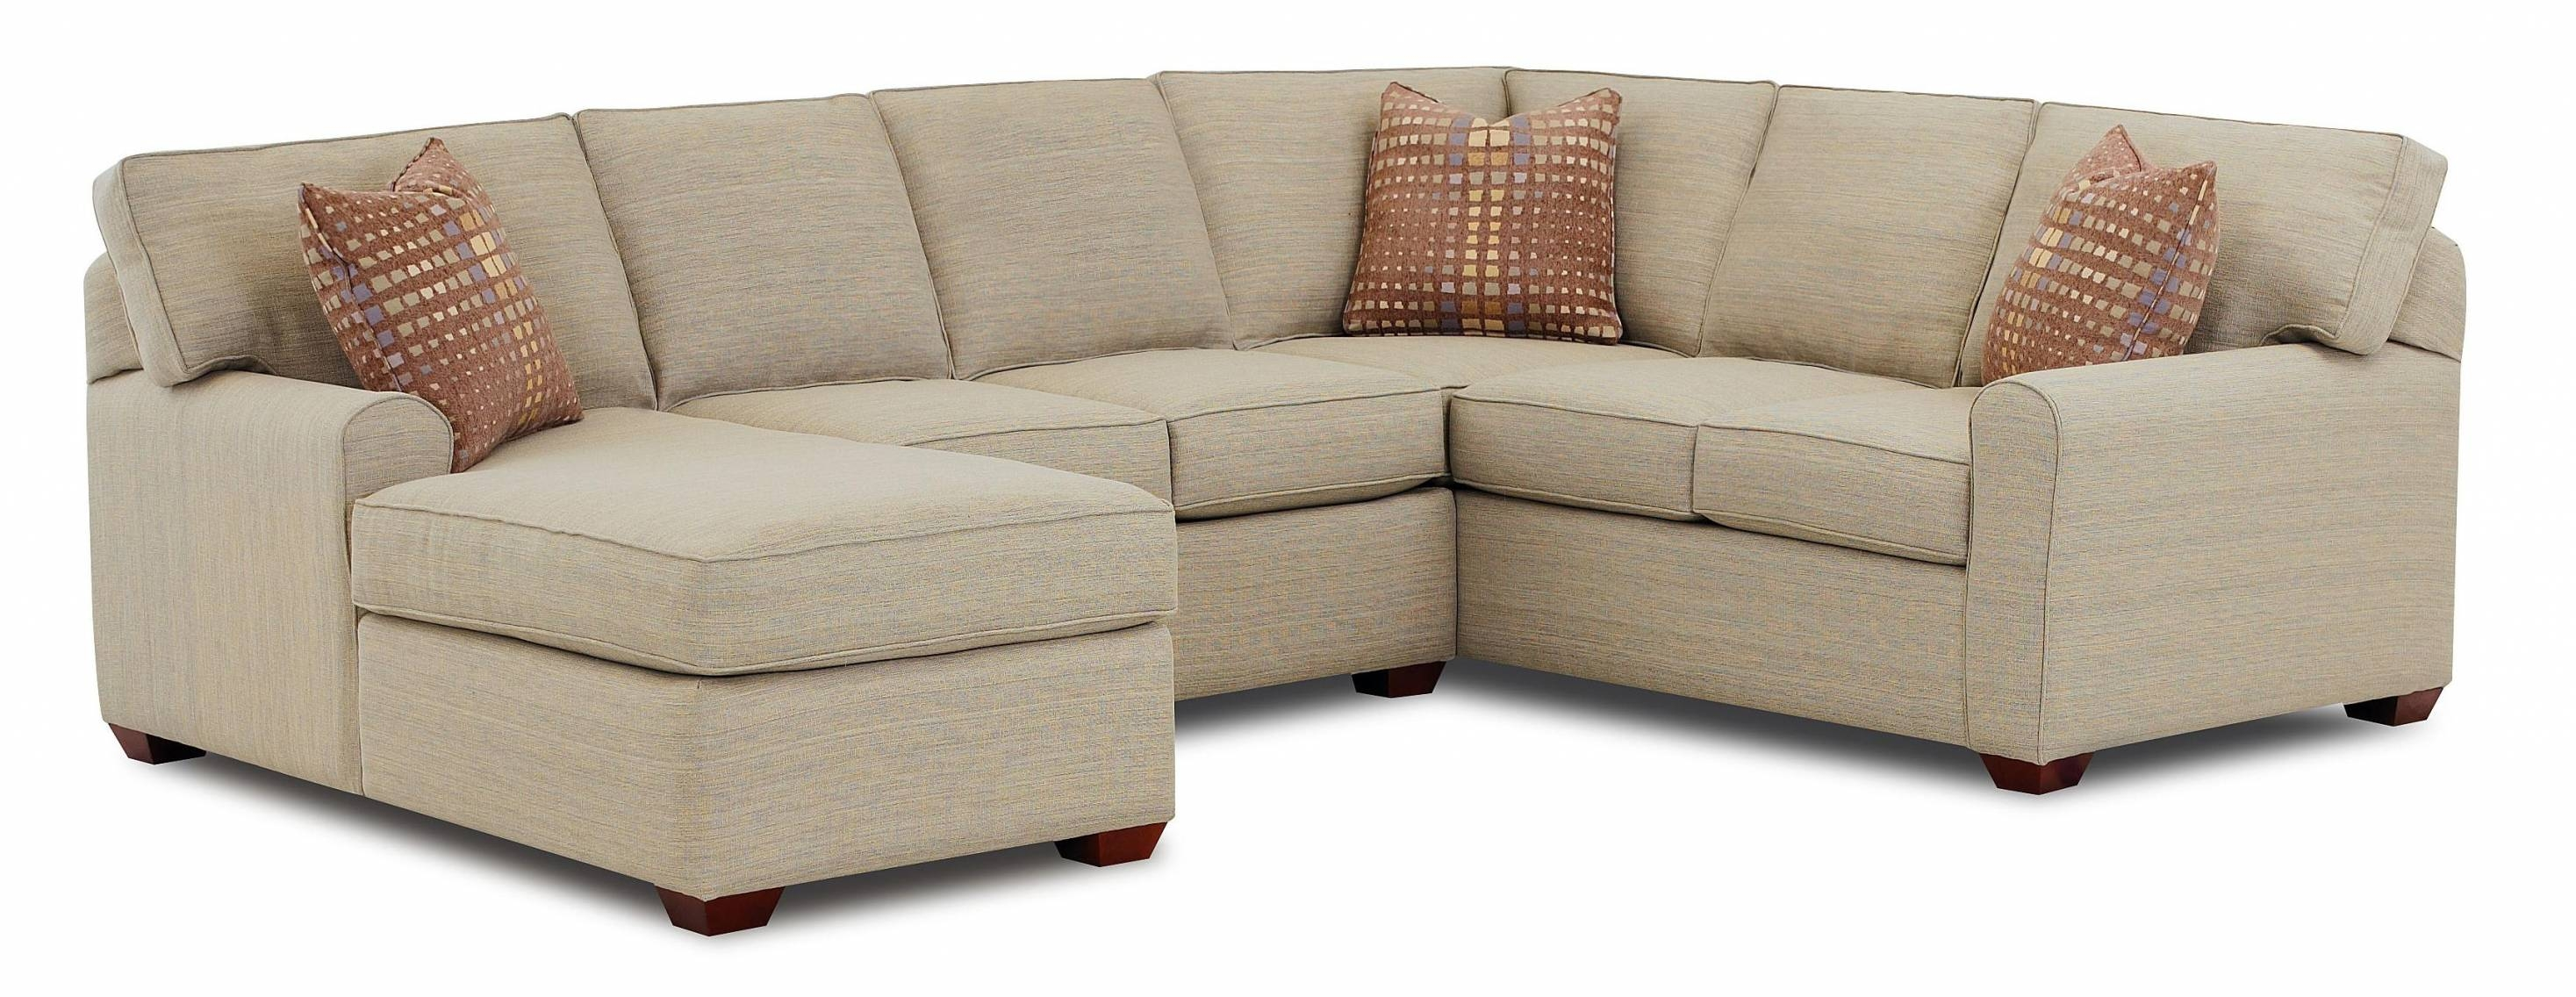 Cool Sectional Sofa With Sleeper And Chaise 15 About Remodel regarding Berkline Sectional Sofa (Image 13 of 30)